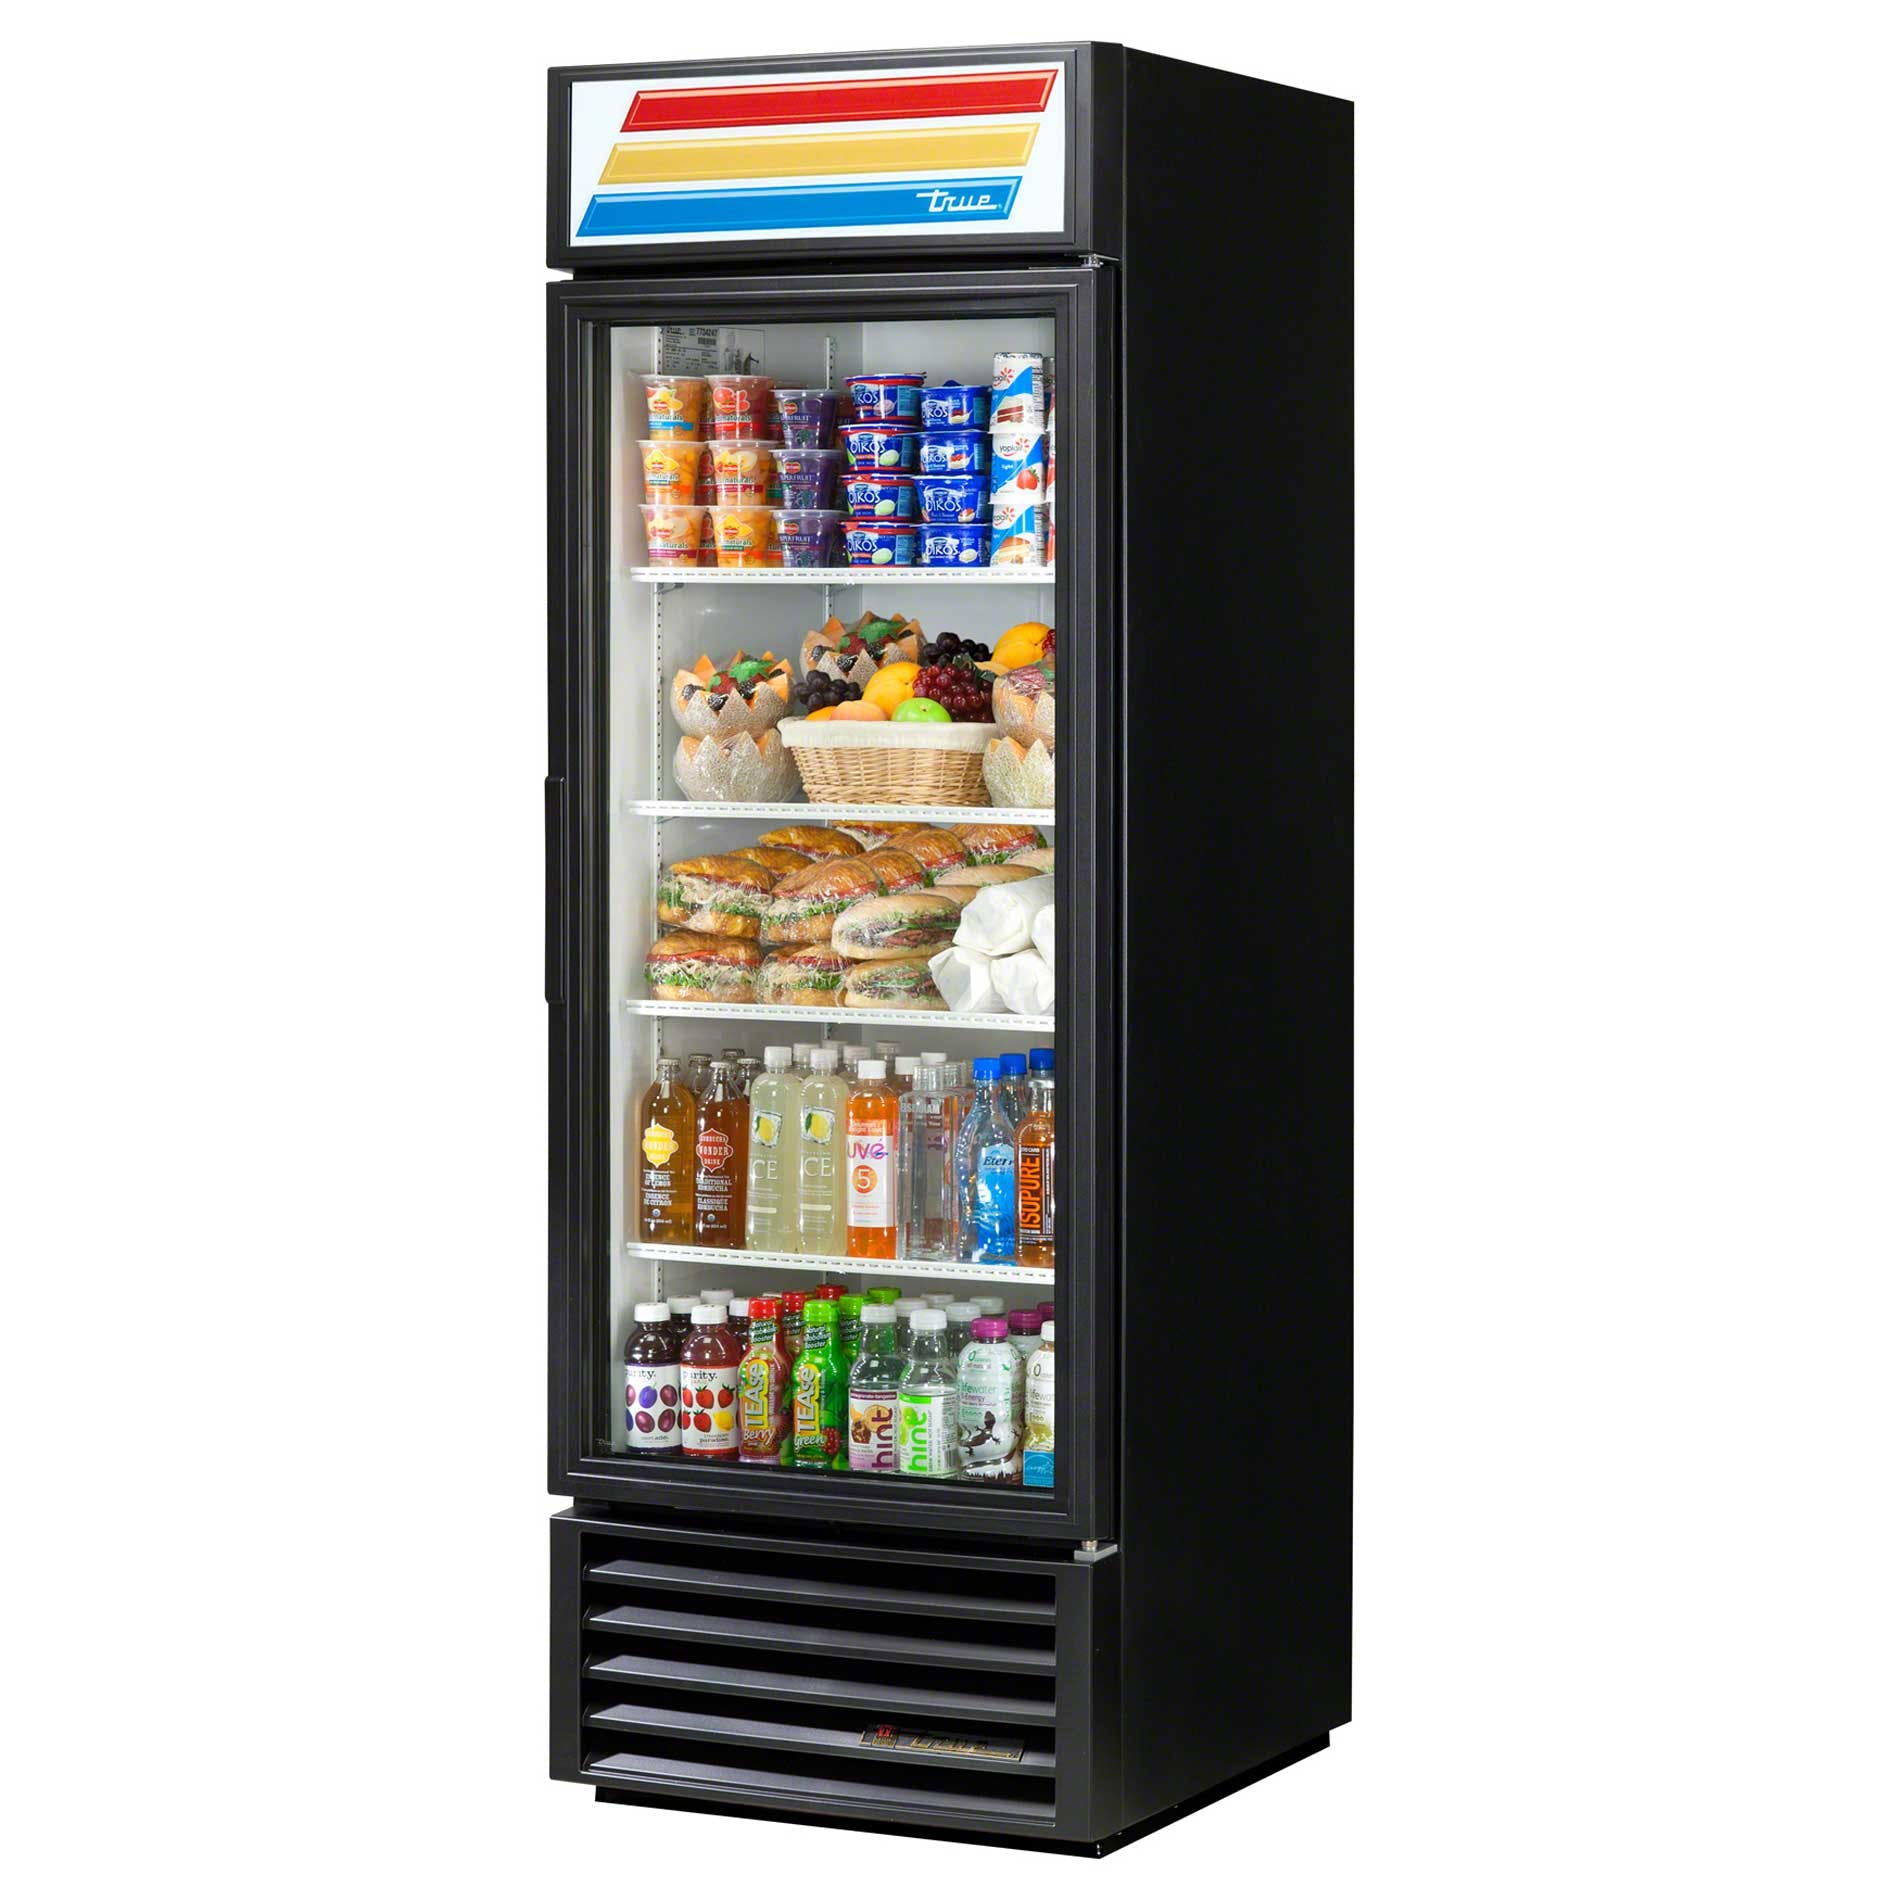 "True - GDM-23-RC-LD 27"" Swing Glass Door Merchandiser Refrigerator LED Commercial refrigerator sold by Food Service Warehouse"